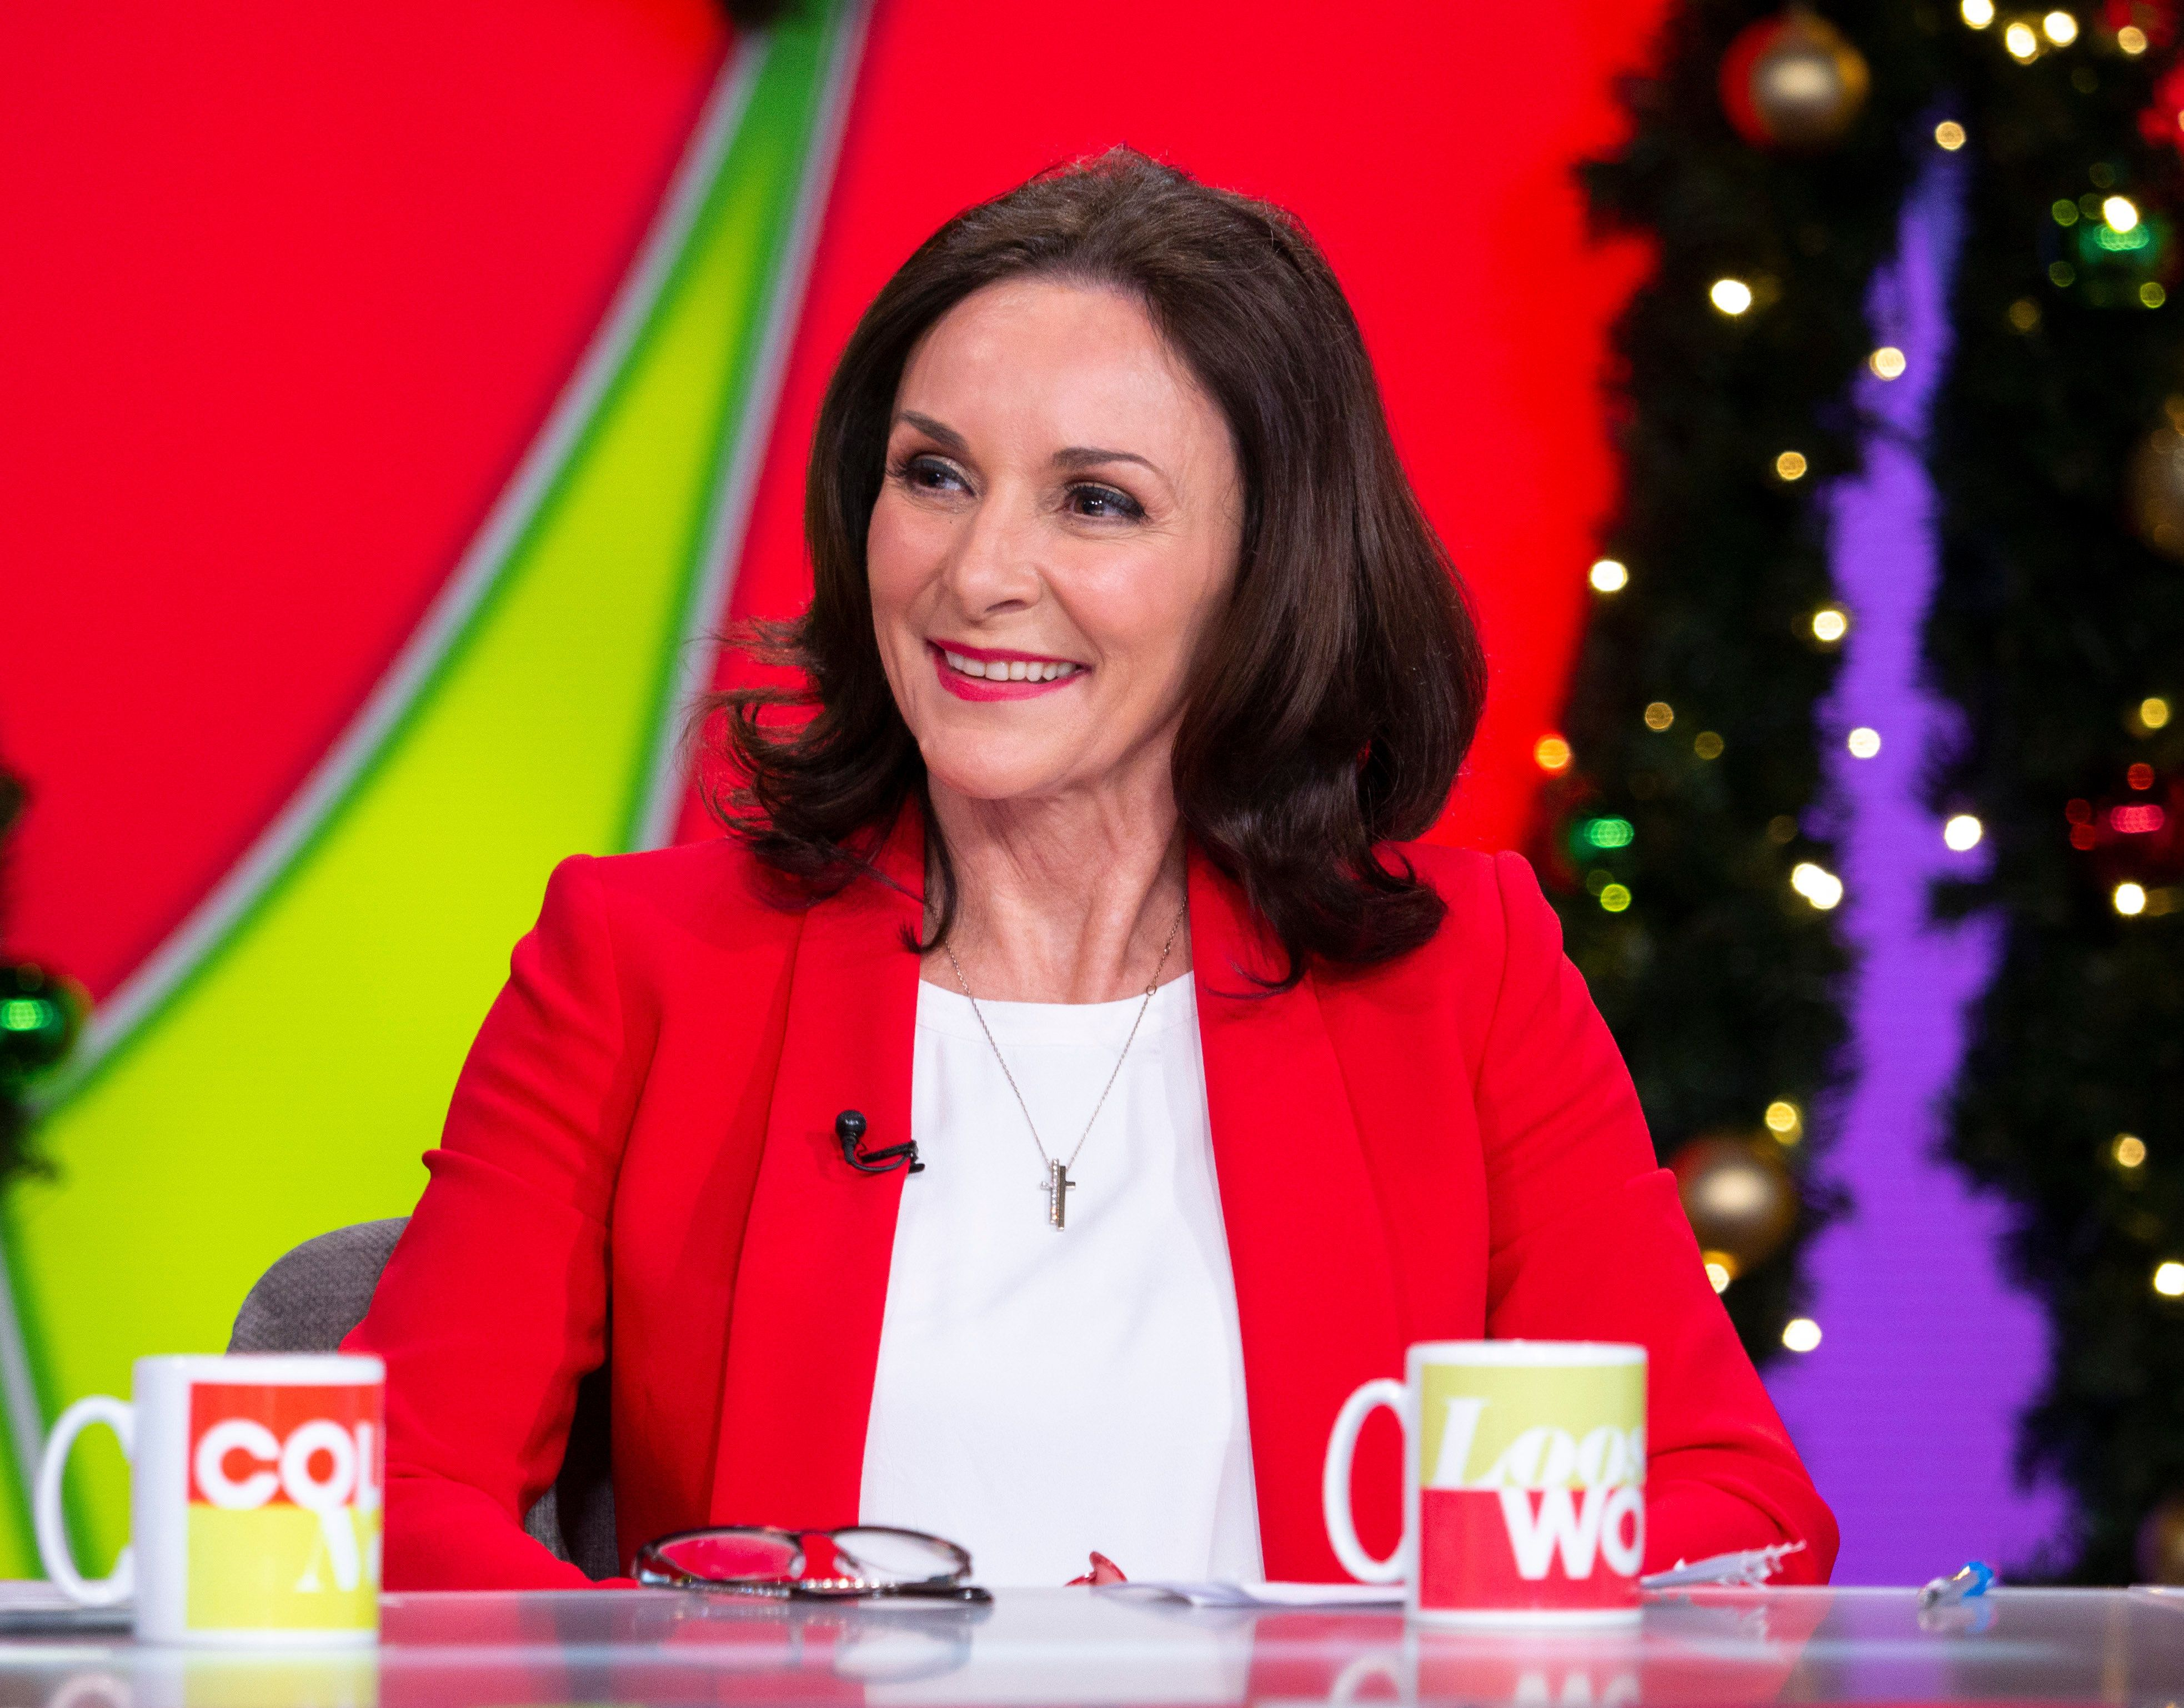 'Strictly Come Dancing': Shirley Ballas Defends Ashley Roberts Over 'Dance